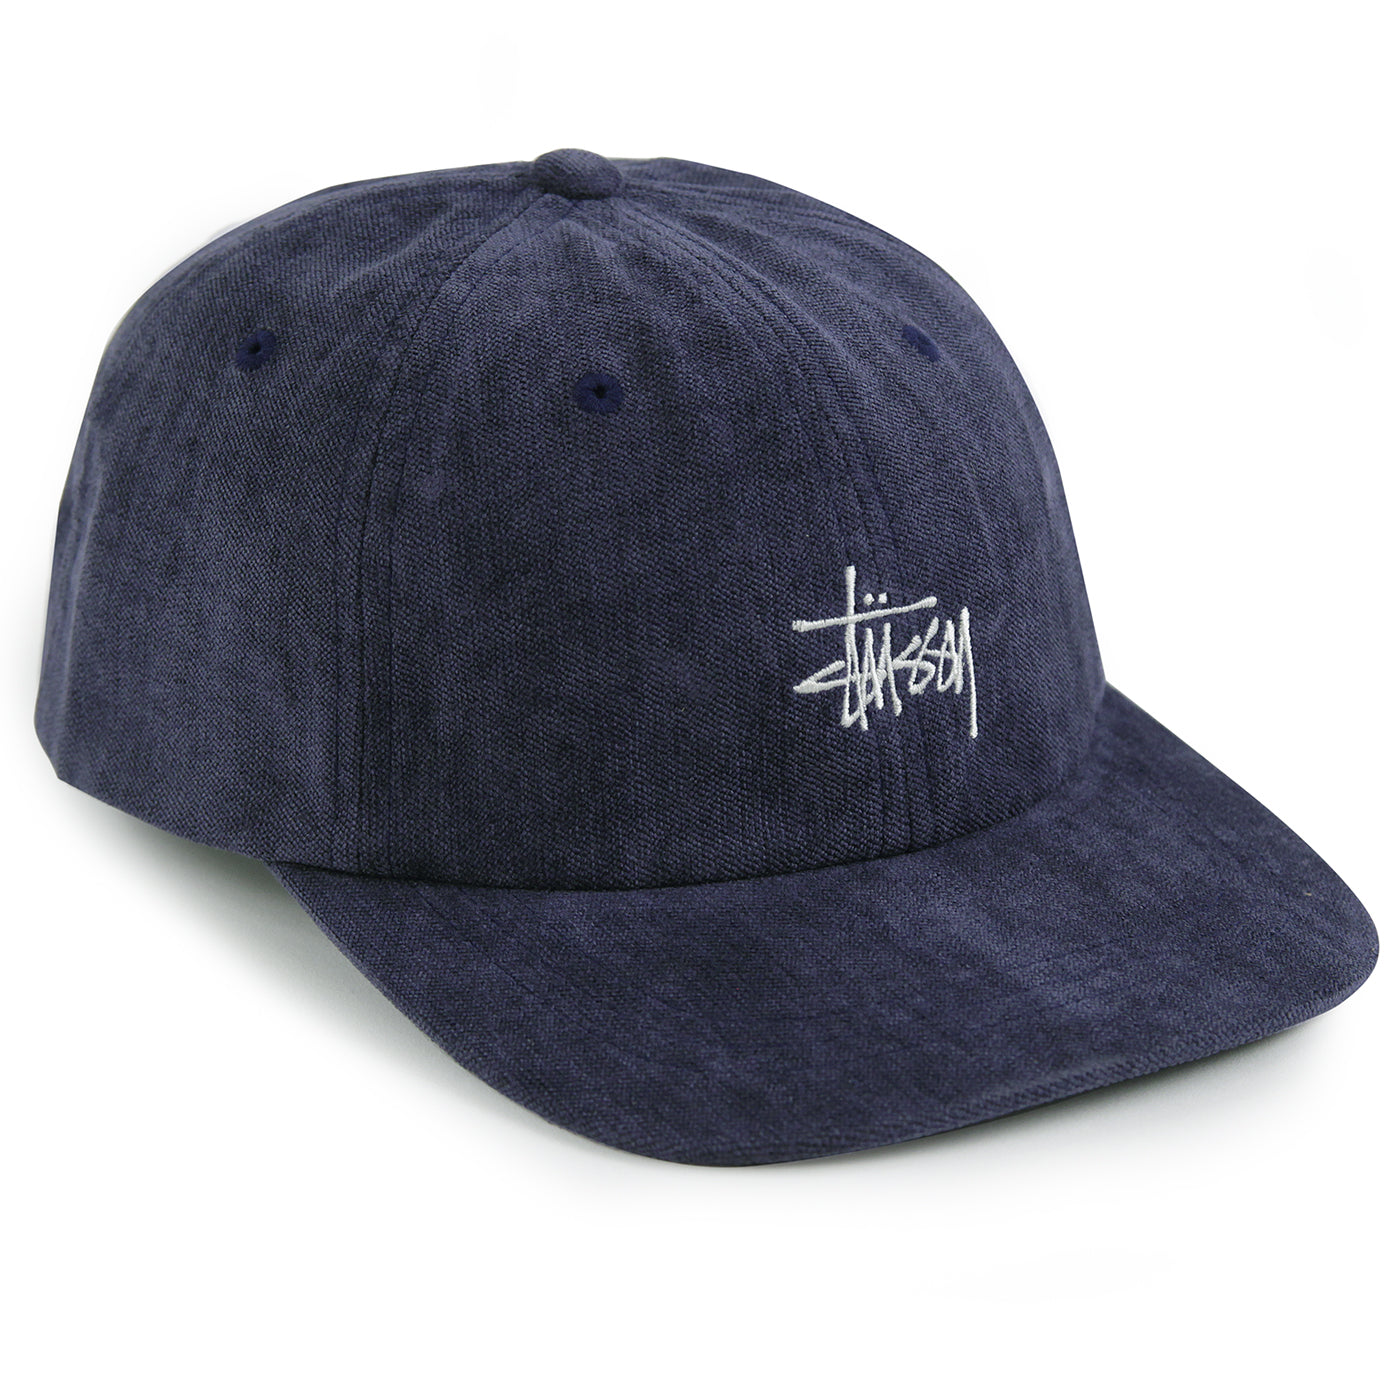 4d2fbb6b No Wale Cord Low Pro Cap in Navy by Stussy | Bored of Southsea